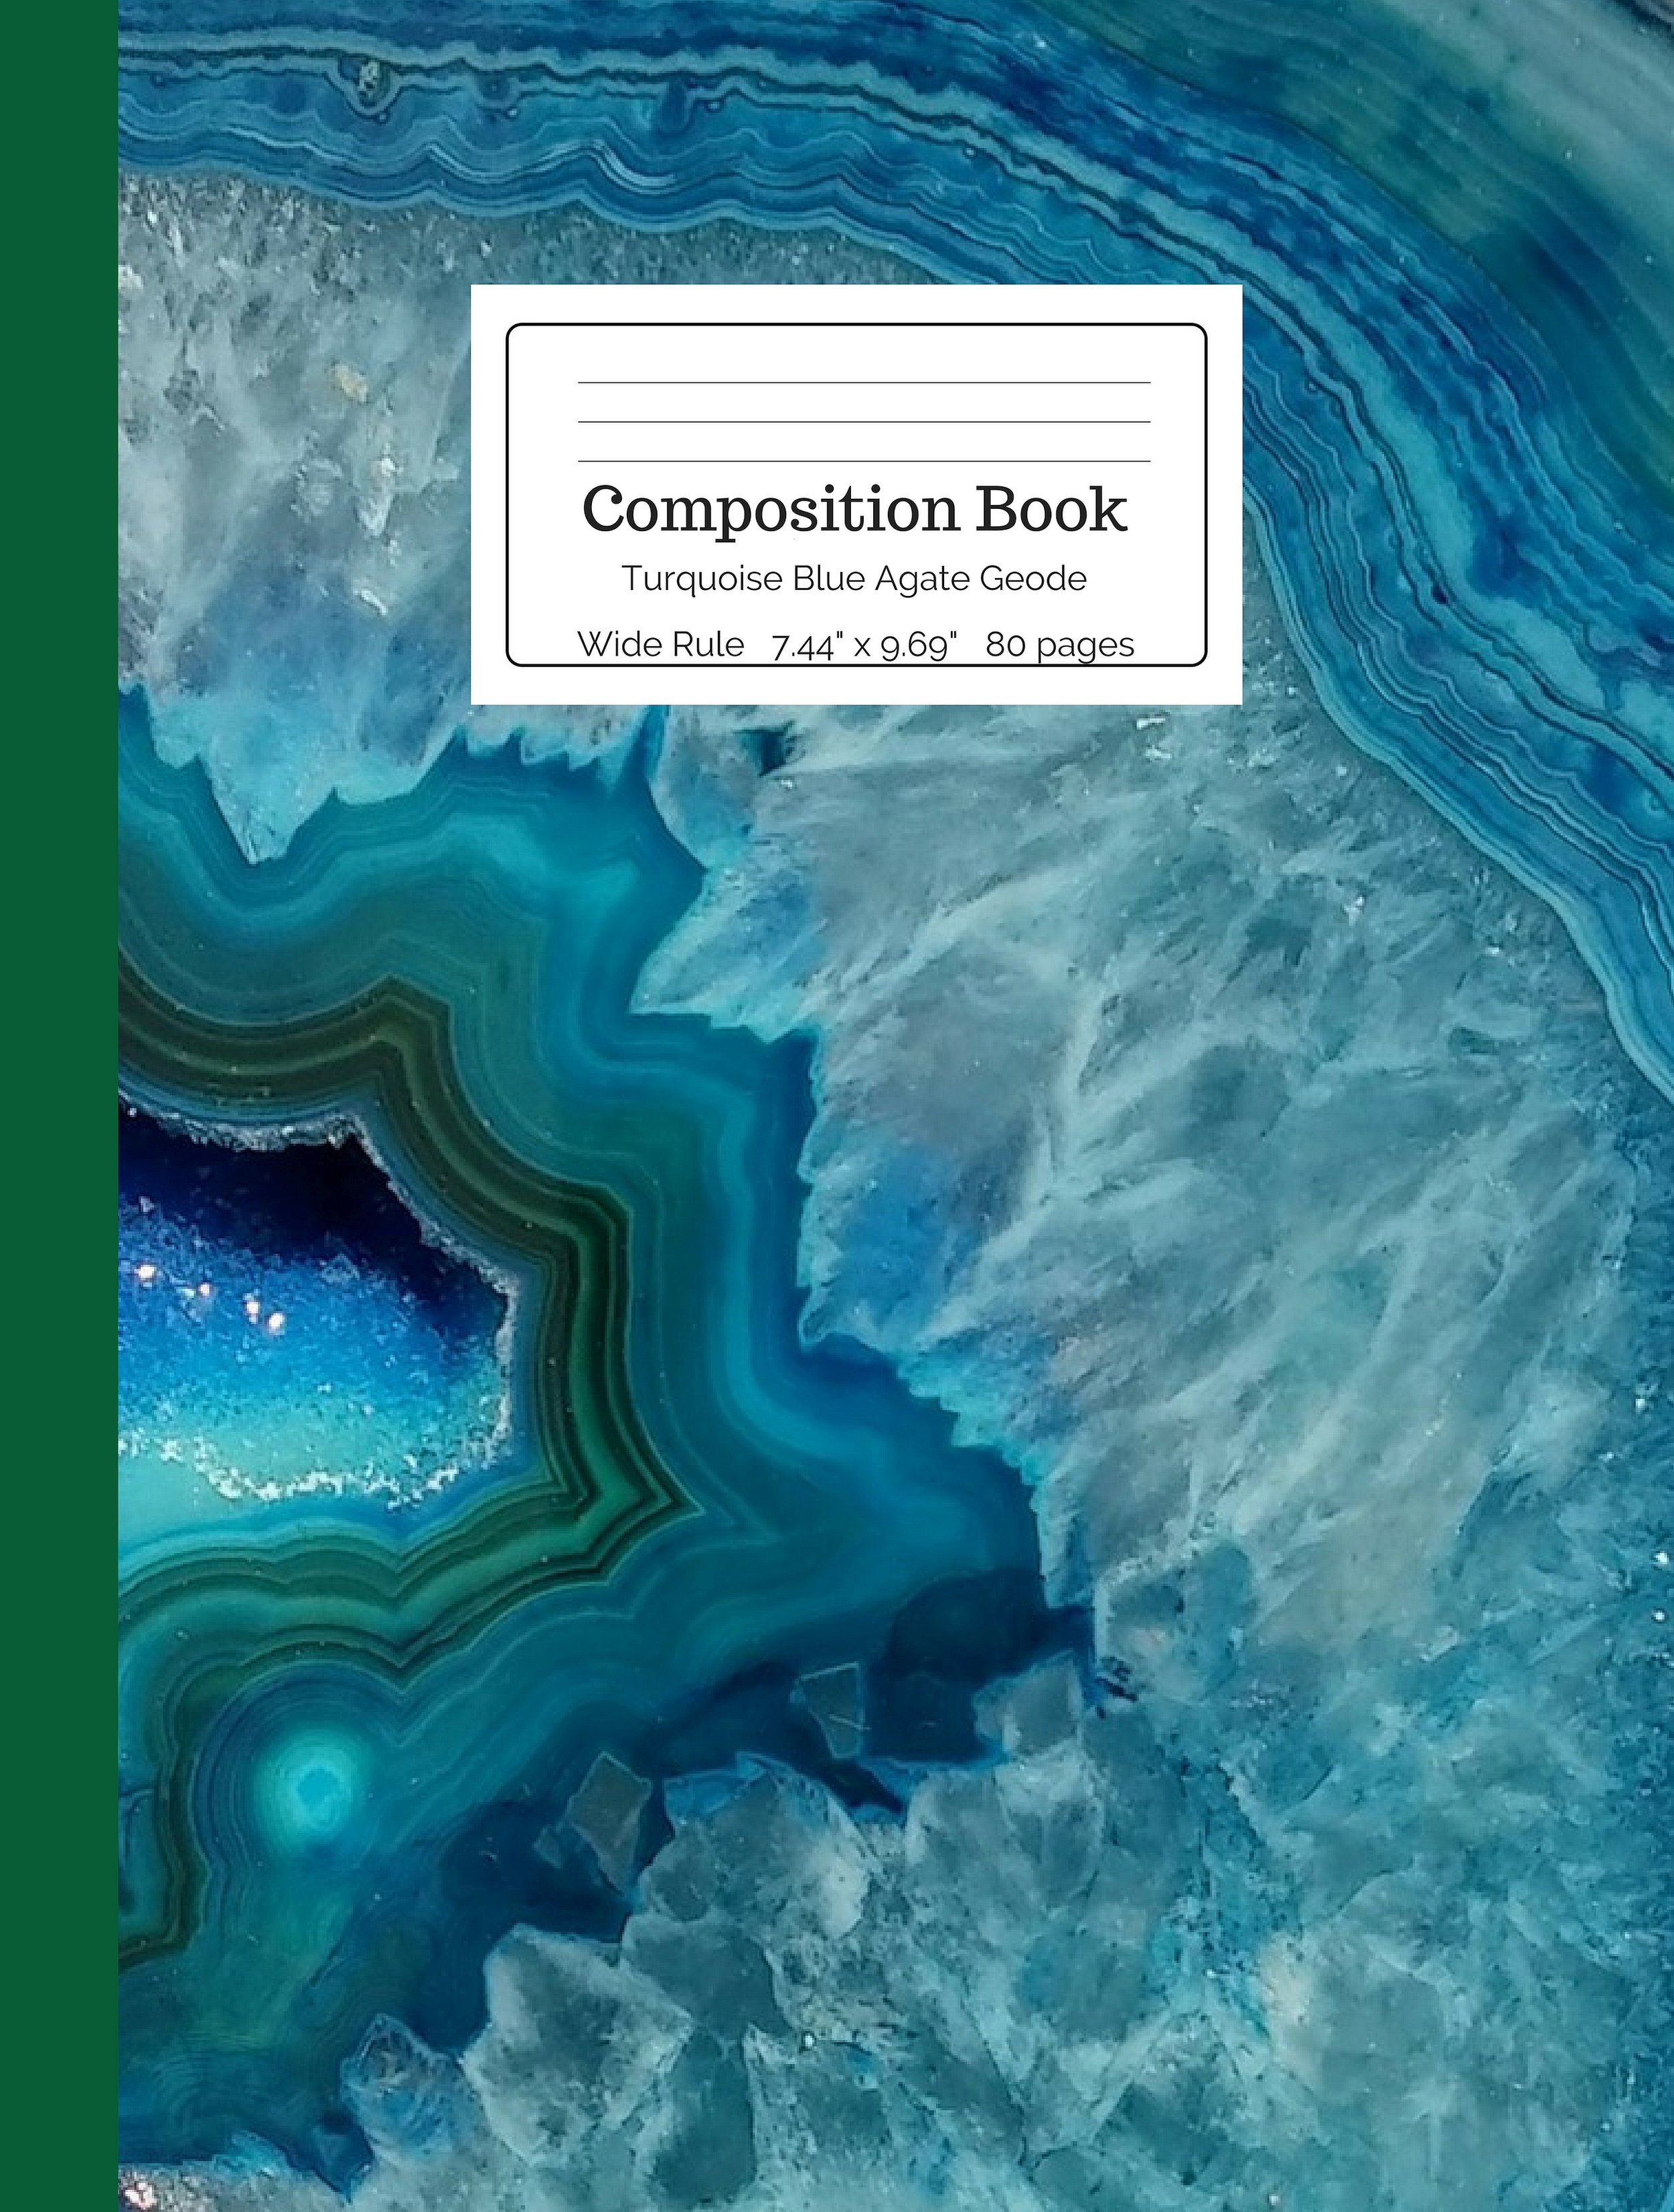 Turquoise Blue Agate Geode Composition Book